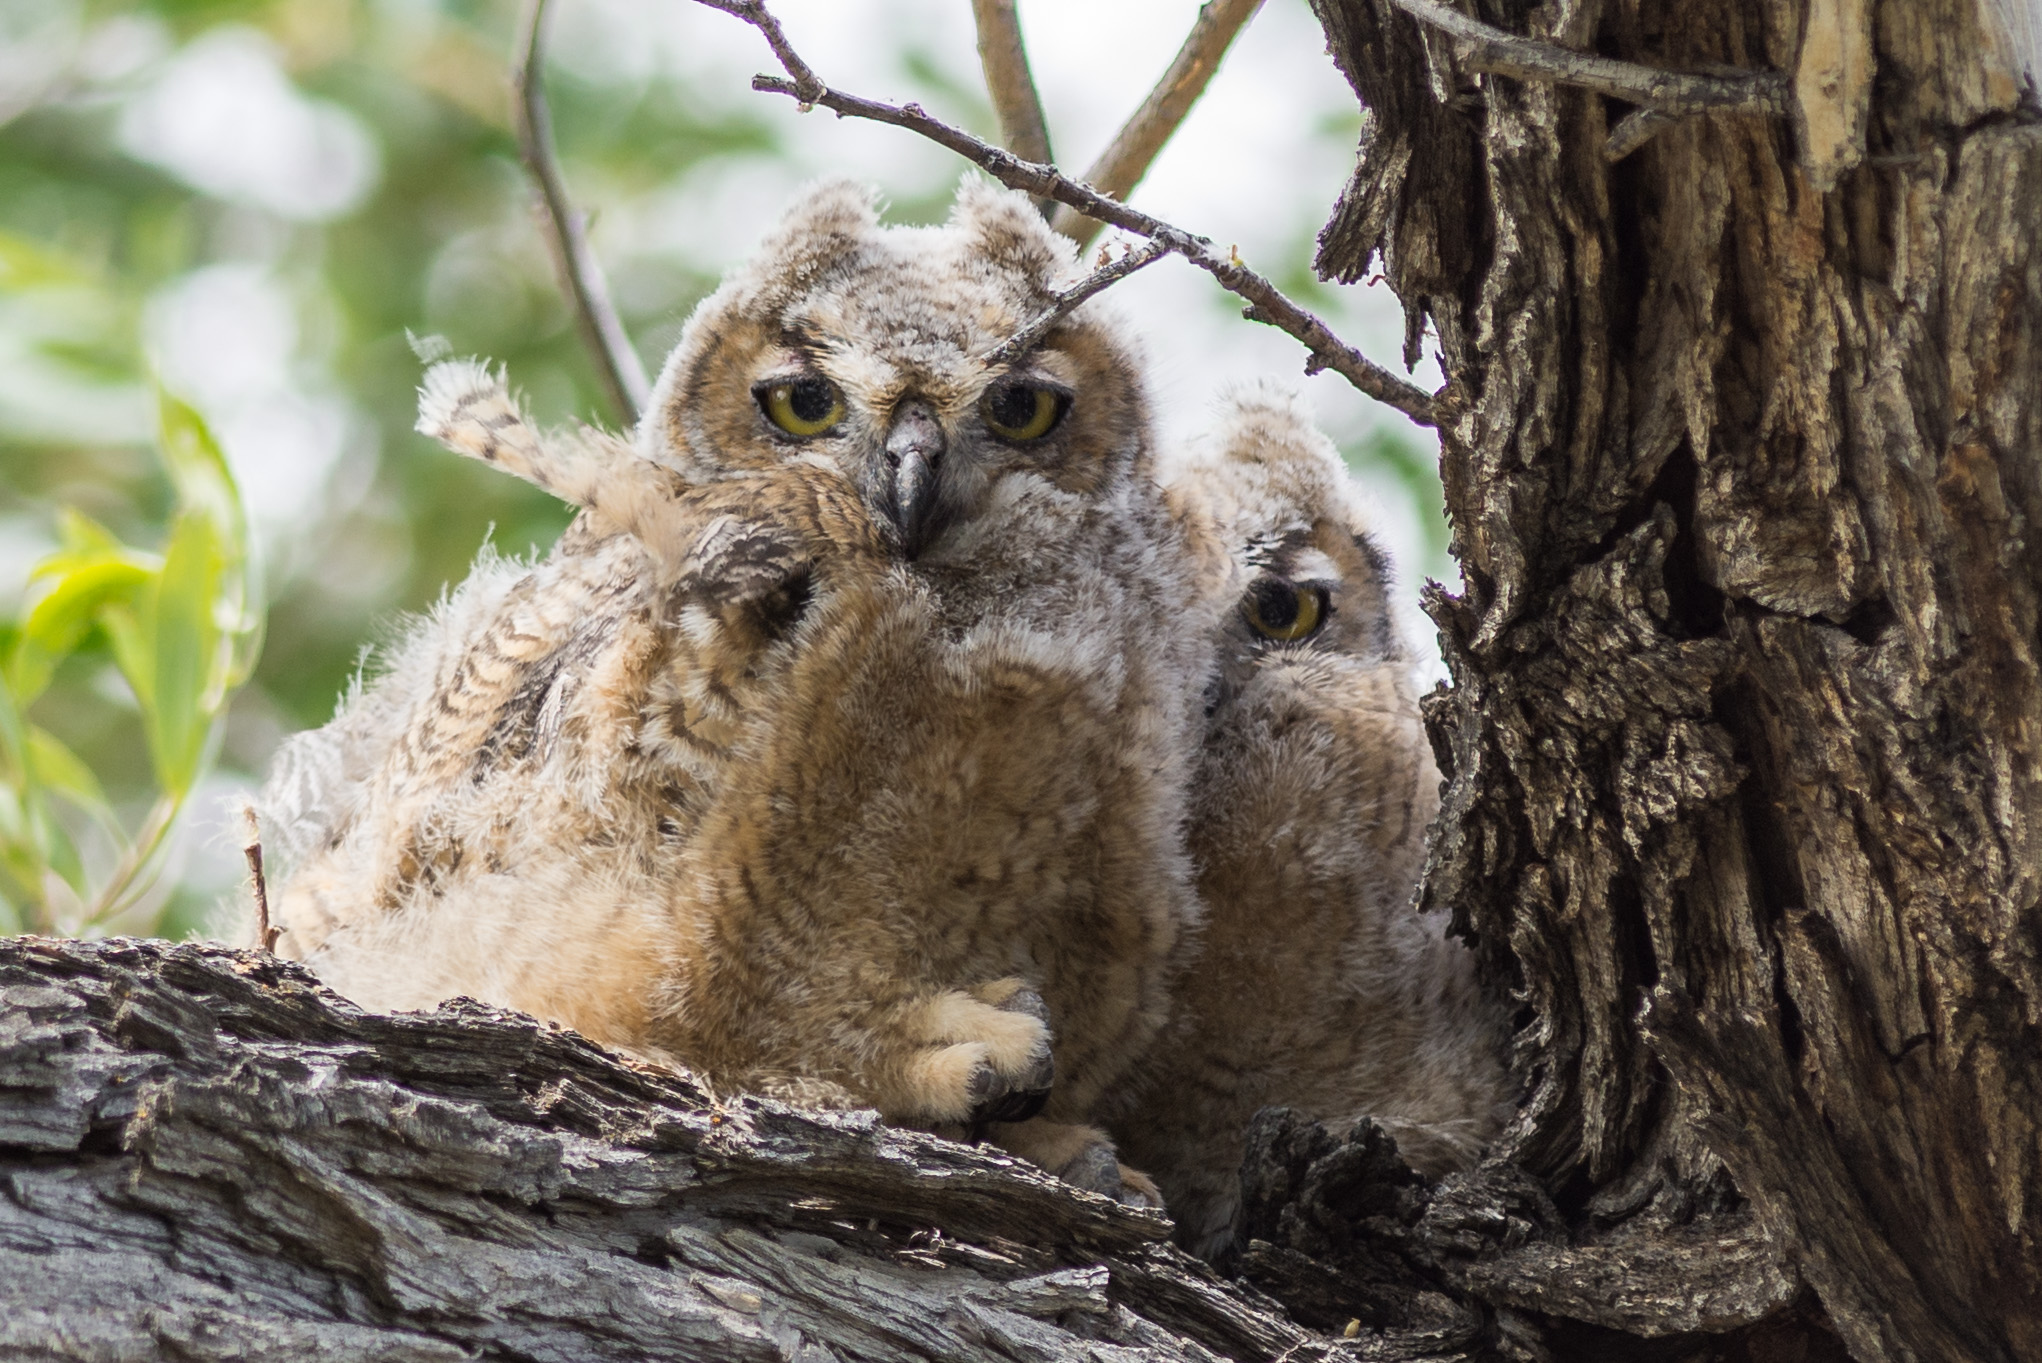 Great Horned Owl, juvenile (Bubo virginianus) at Pyramid Lake - Willows, WAS (NV)  EQ: D7200, 300mm f/2.8    Taken: 5-19-2016 at 11:13   Settings: 450mm (35mm eqiv), 1/640s, f/3.2, ISO180, +1/3EV     Conditions: Sunny and Windy